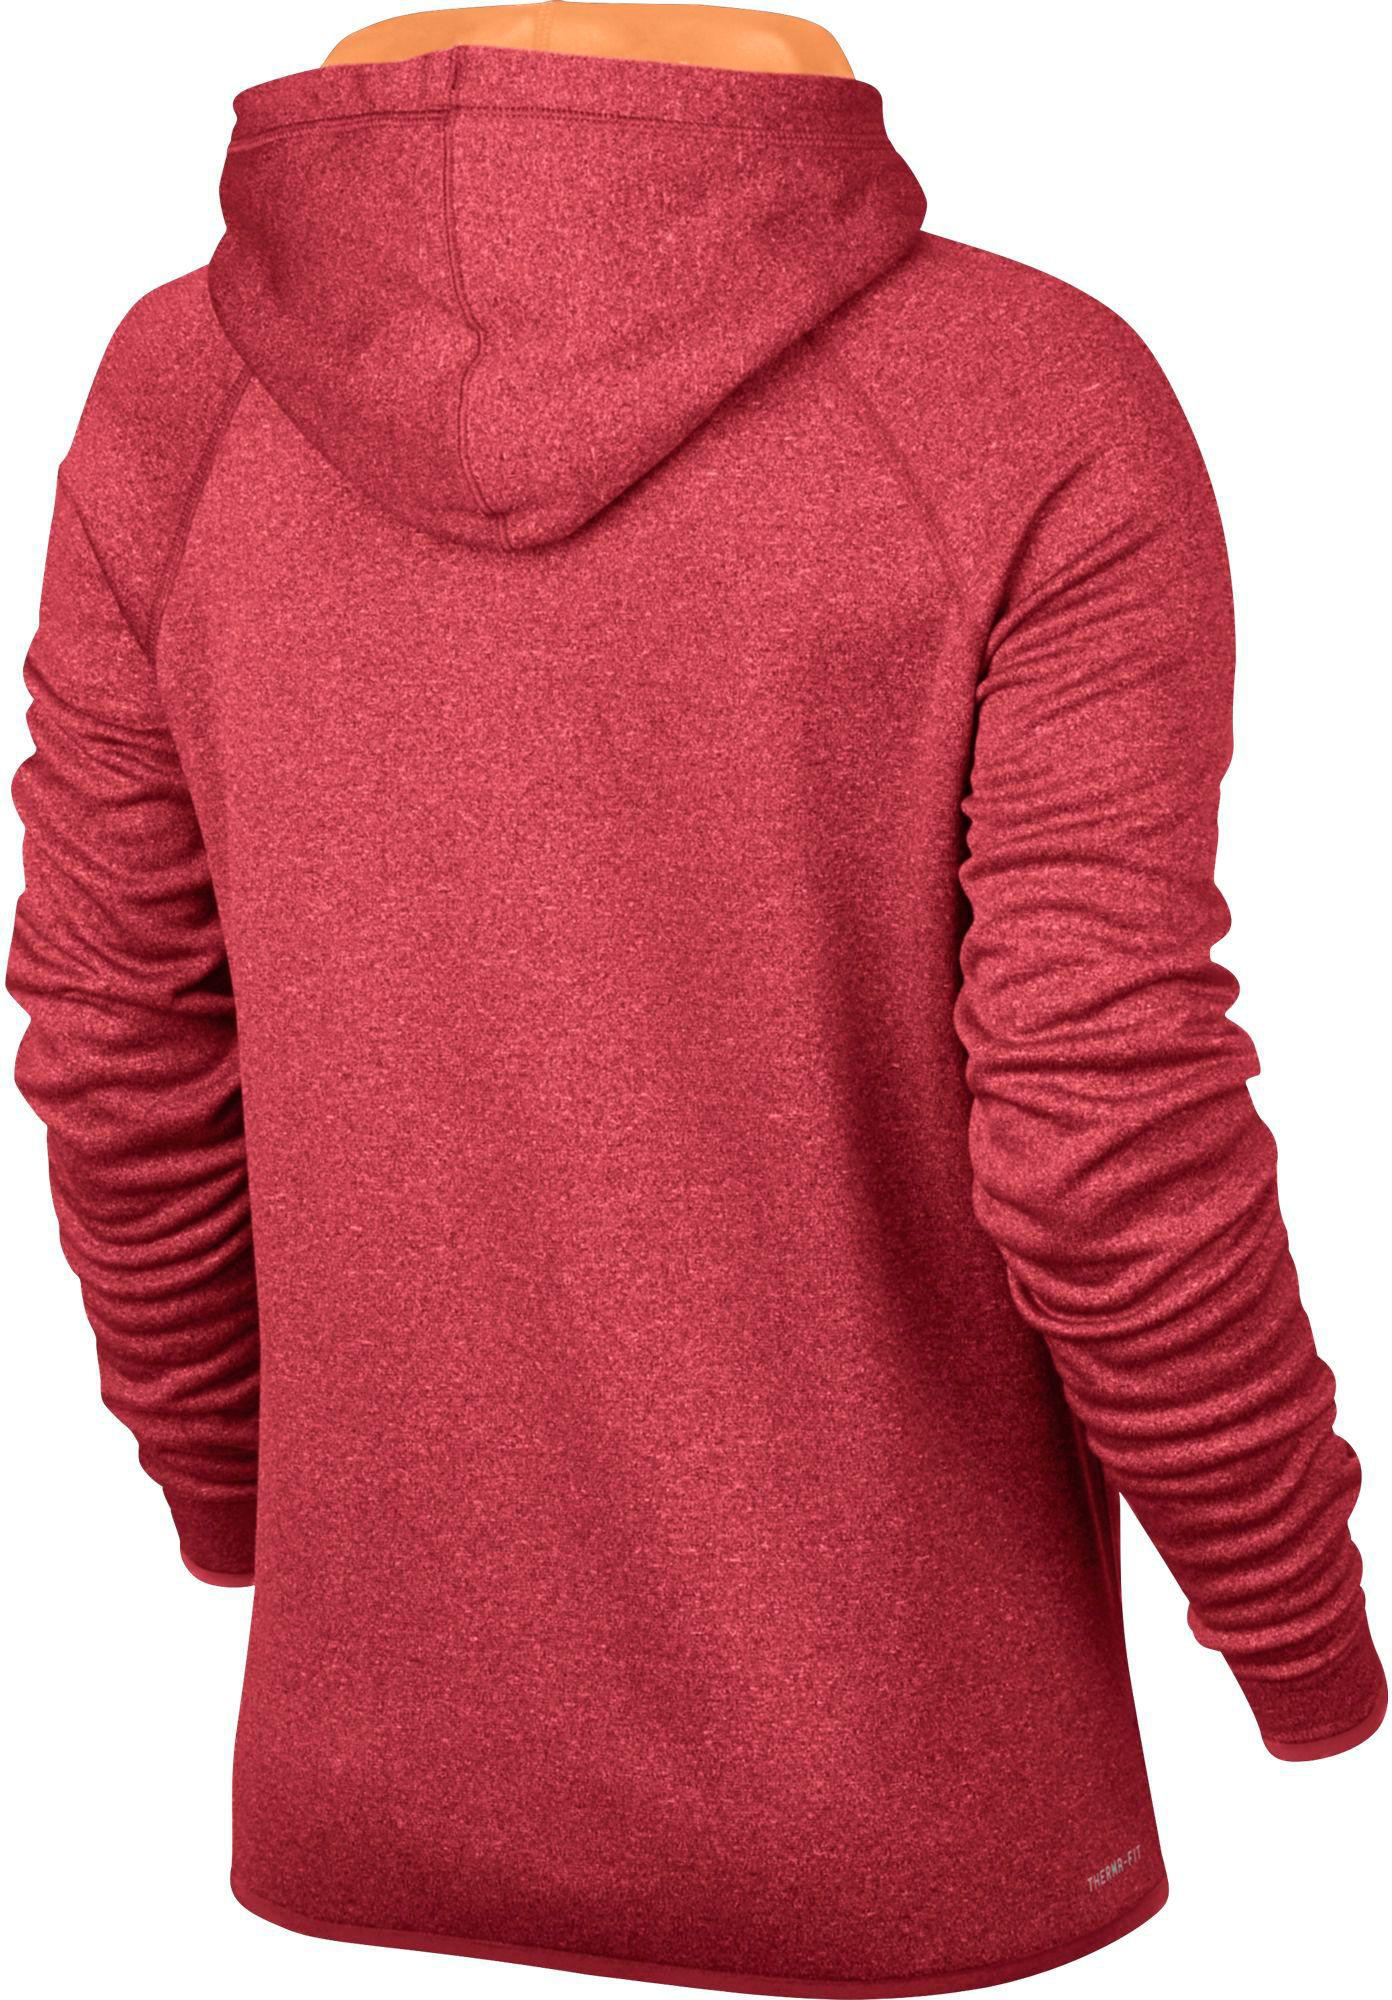 39a1b71007b7 Lyst - Nike Therma All Time Graphic Hoodie in Red